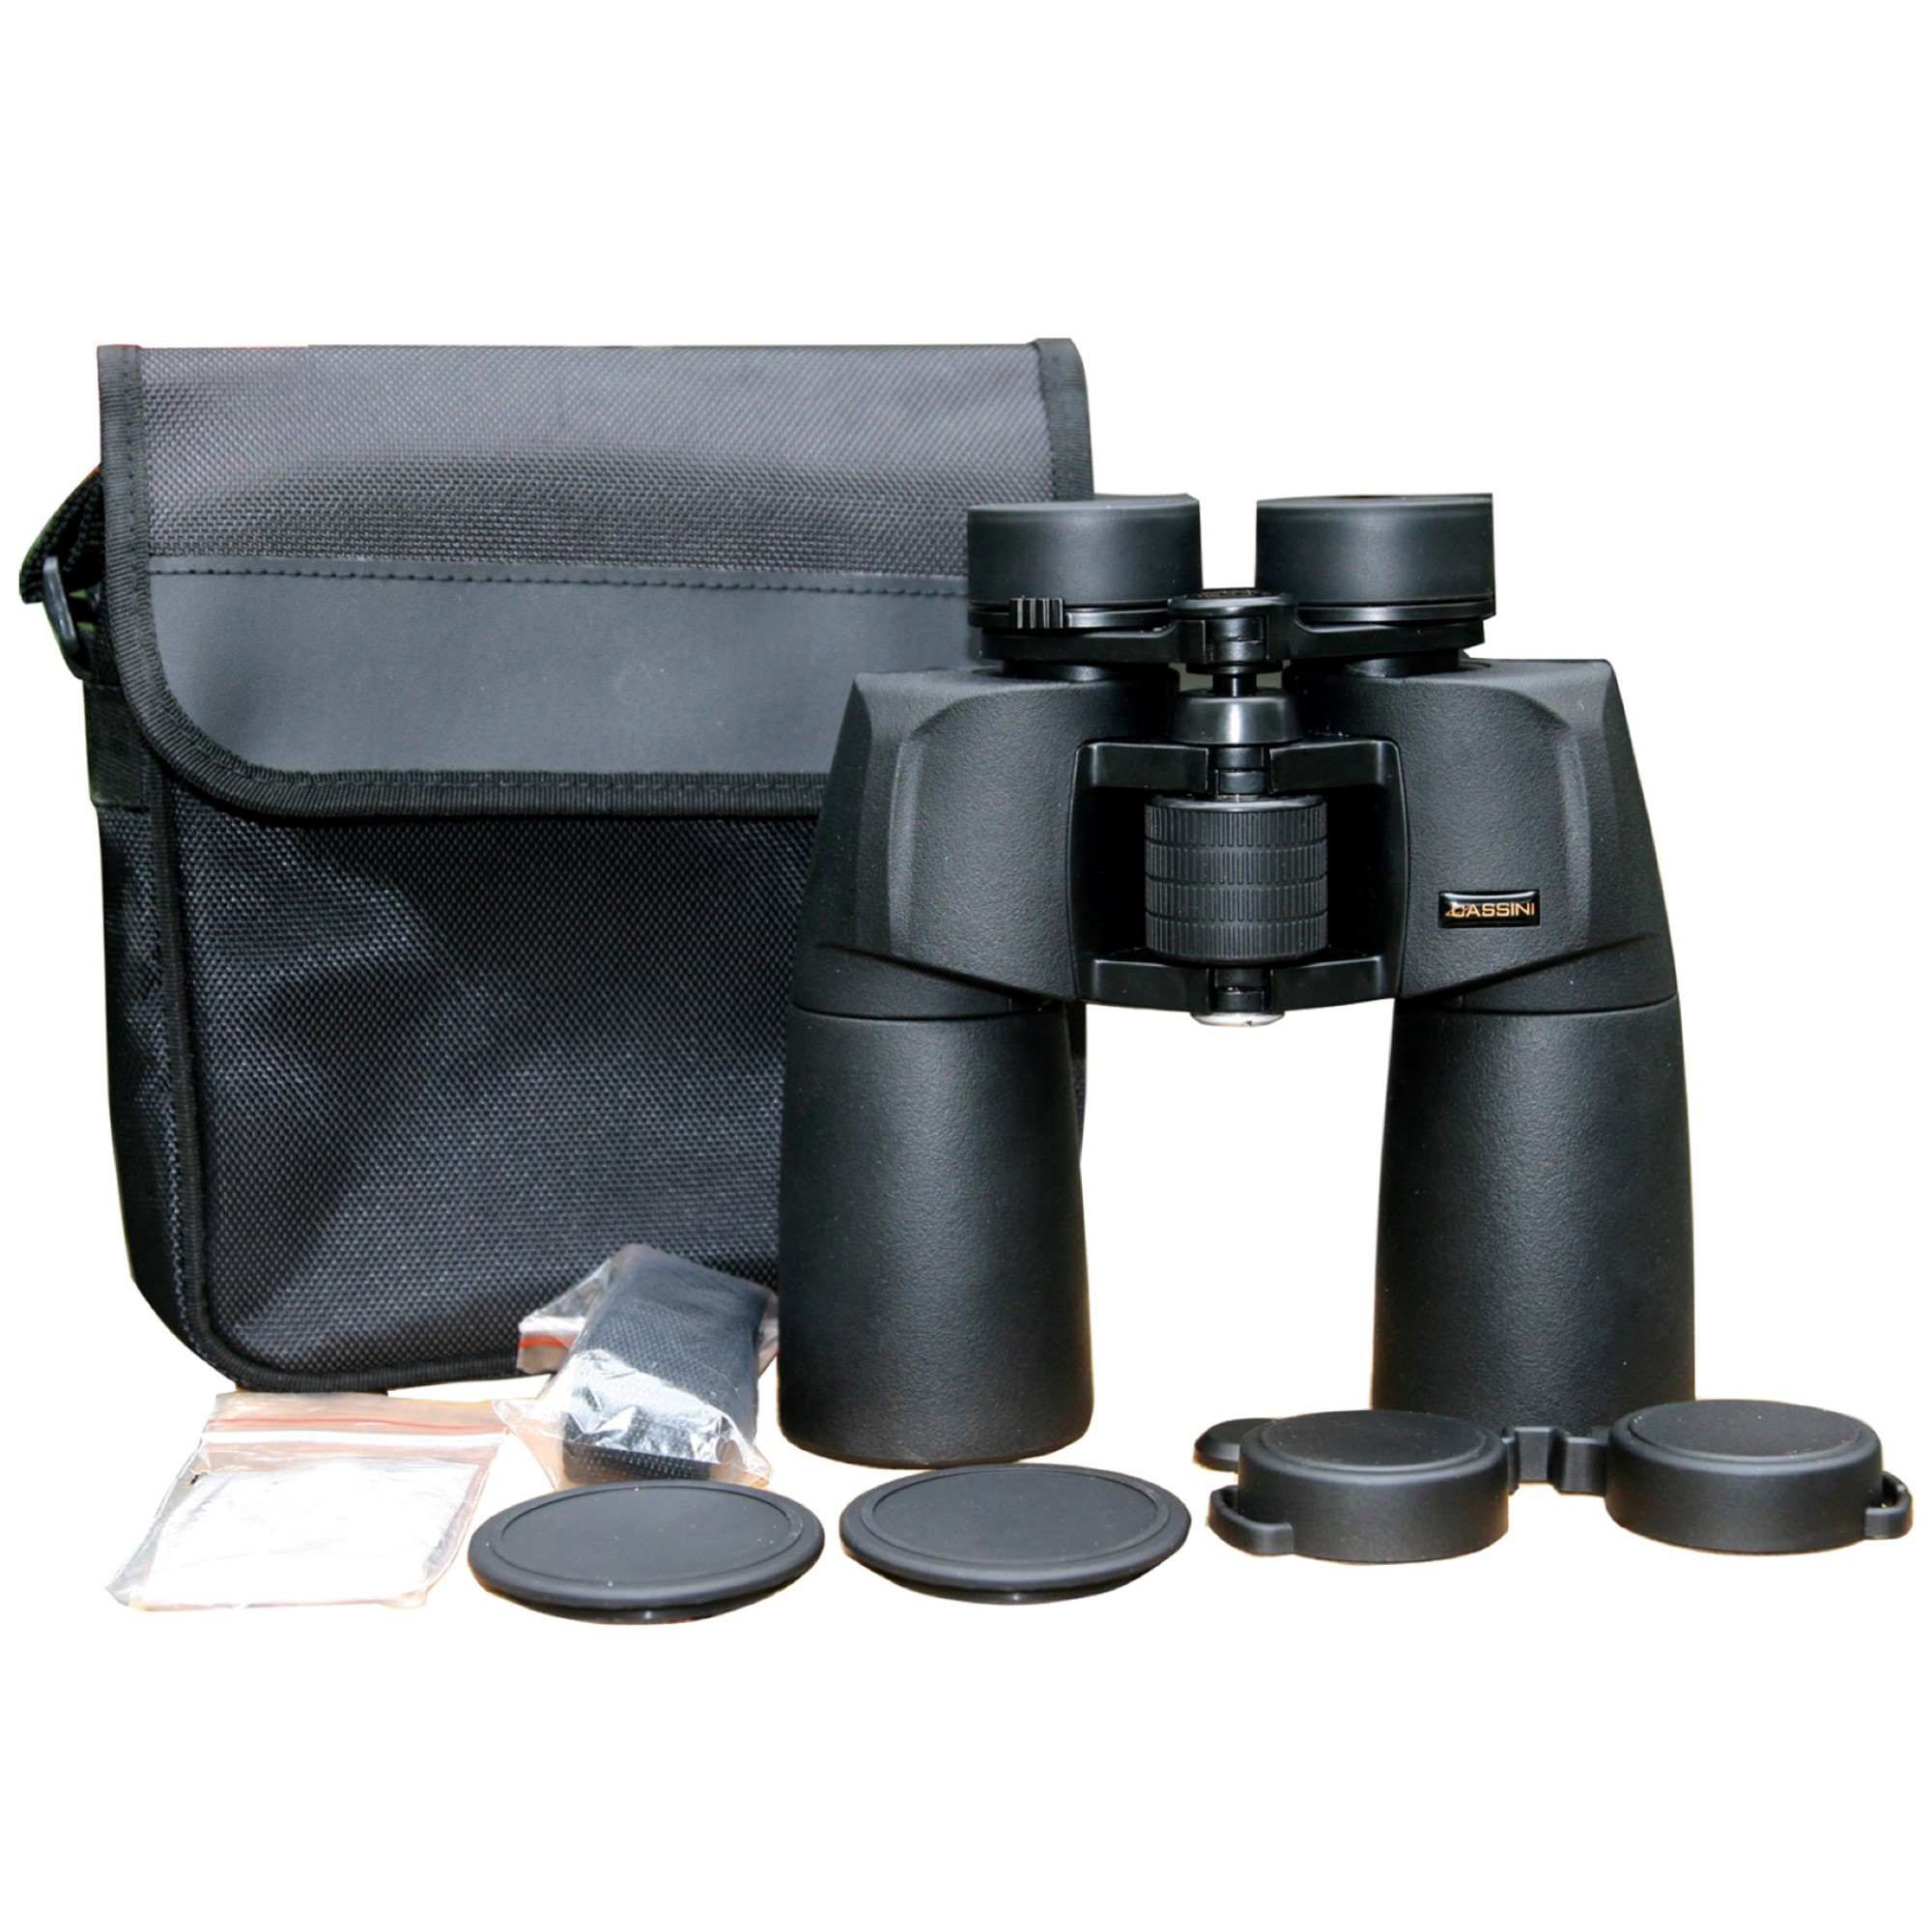 Cassini 12 x 50mm Nitrogen Purged Waterproof & Fogproof Land and Sky Binocular with BAK4 Prisms, Twist Up Eyecups , Shoulder Case and Tripod Port